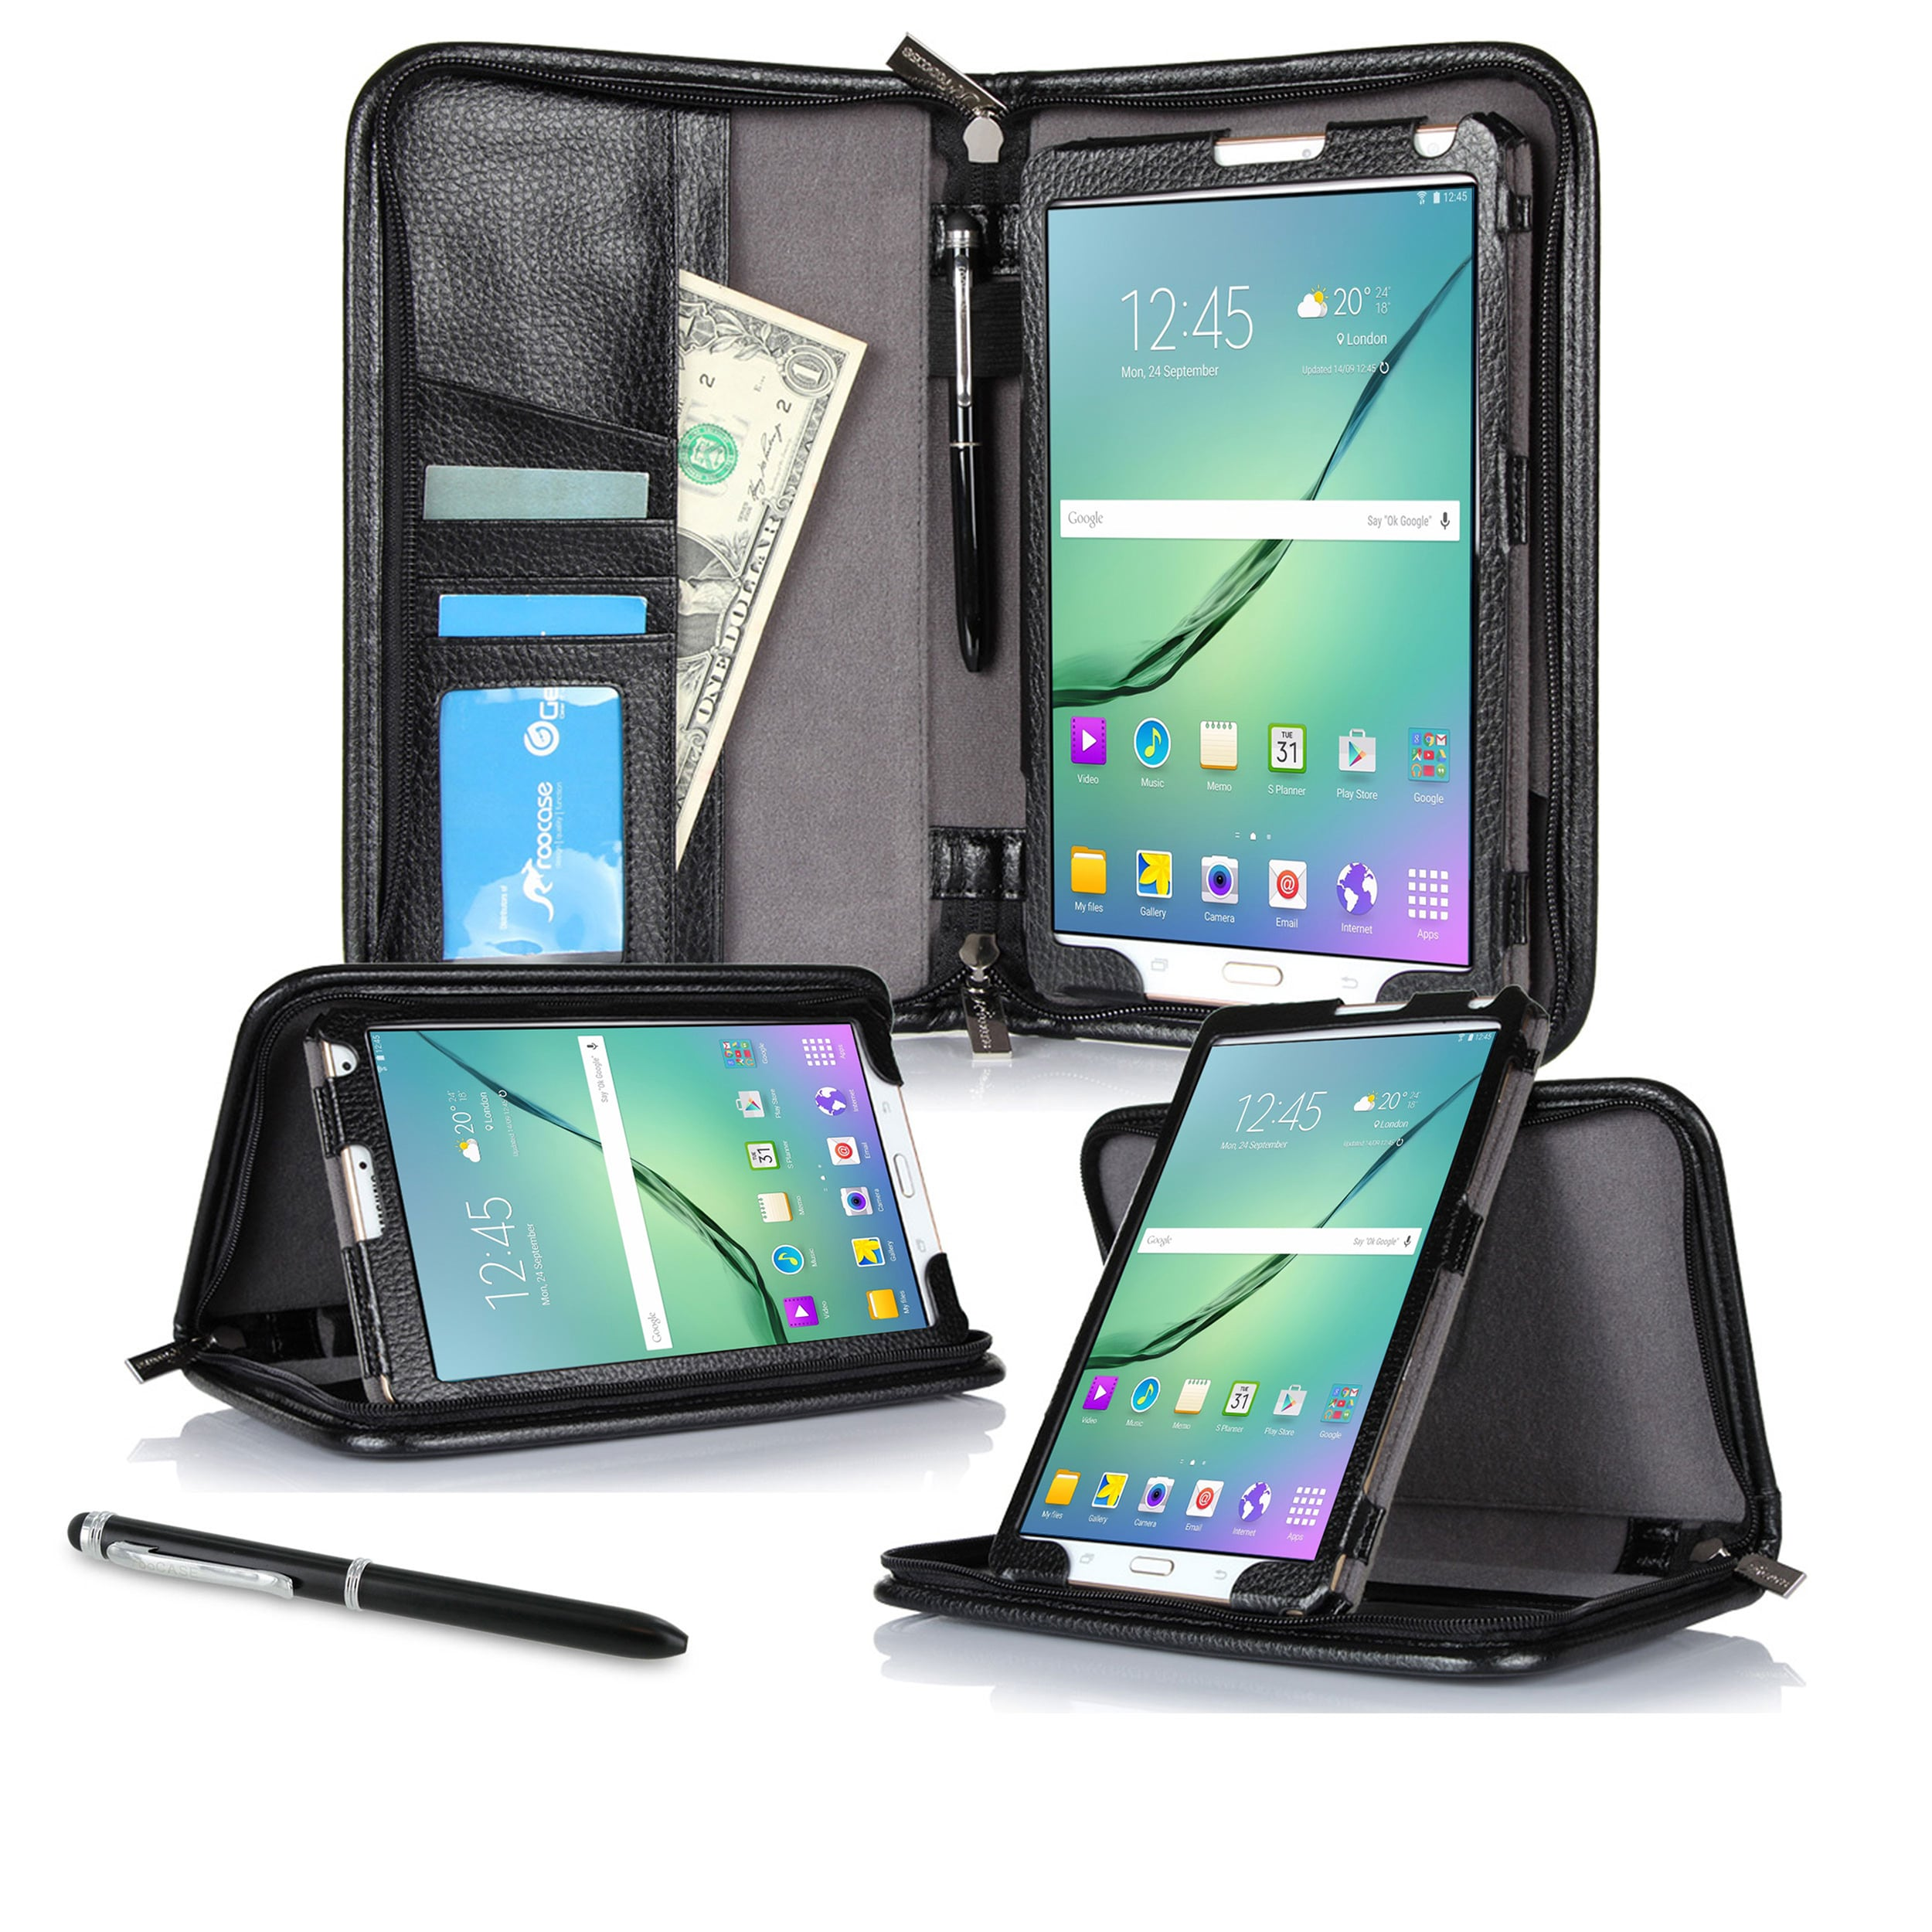 roocase Executive Case for Samsung Galaxy Tab S2 9.7